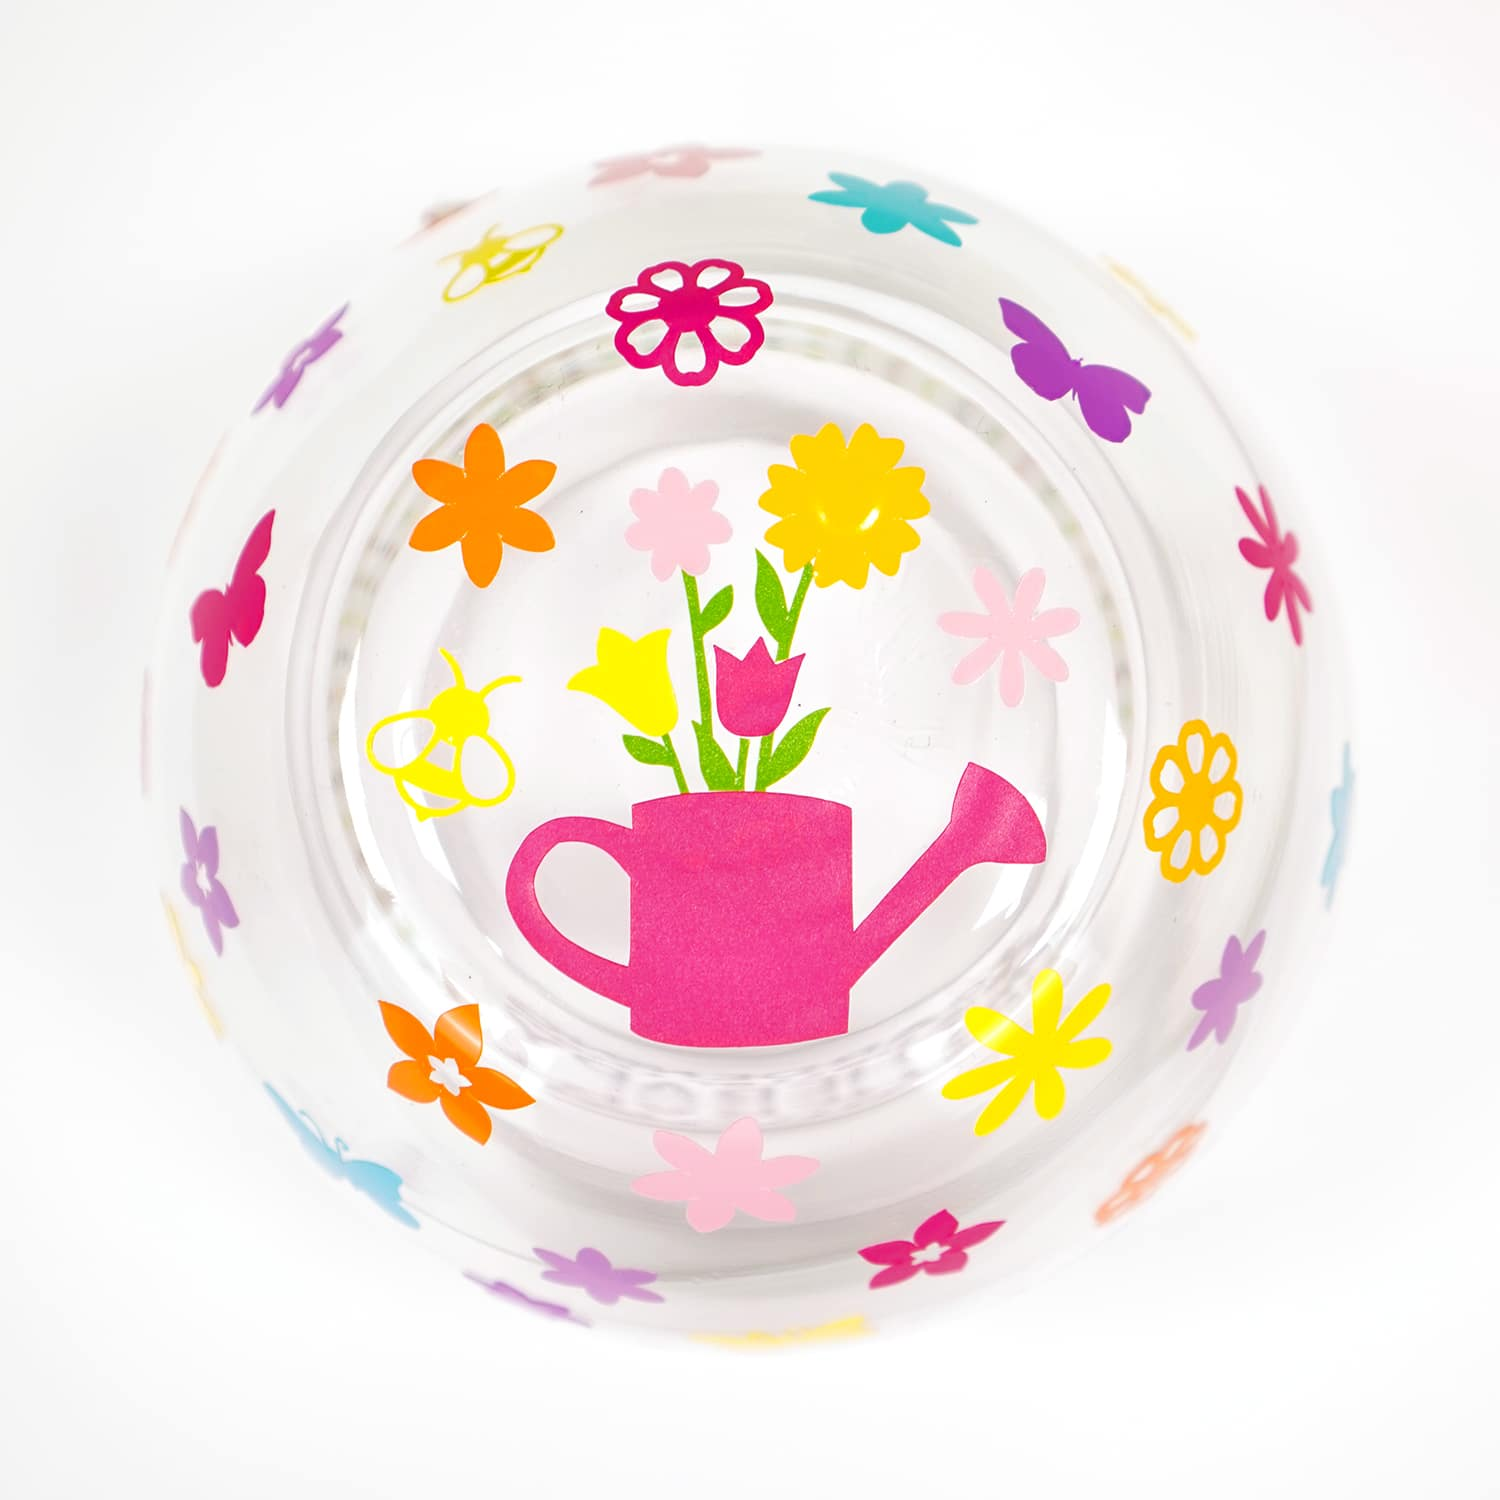 Inside of garden themed wine glass - watering can and floral decals on white background